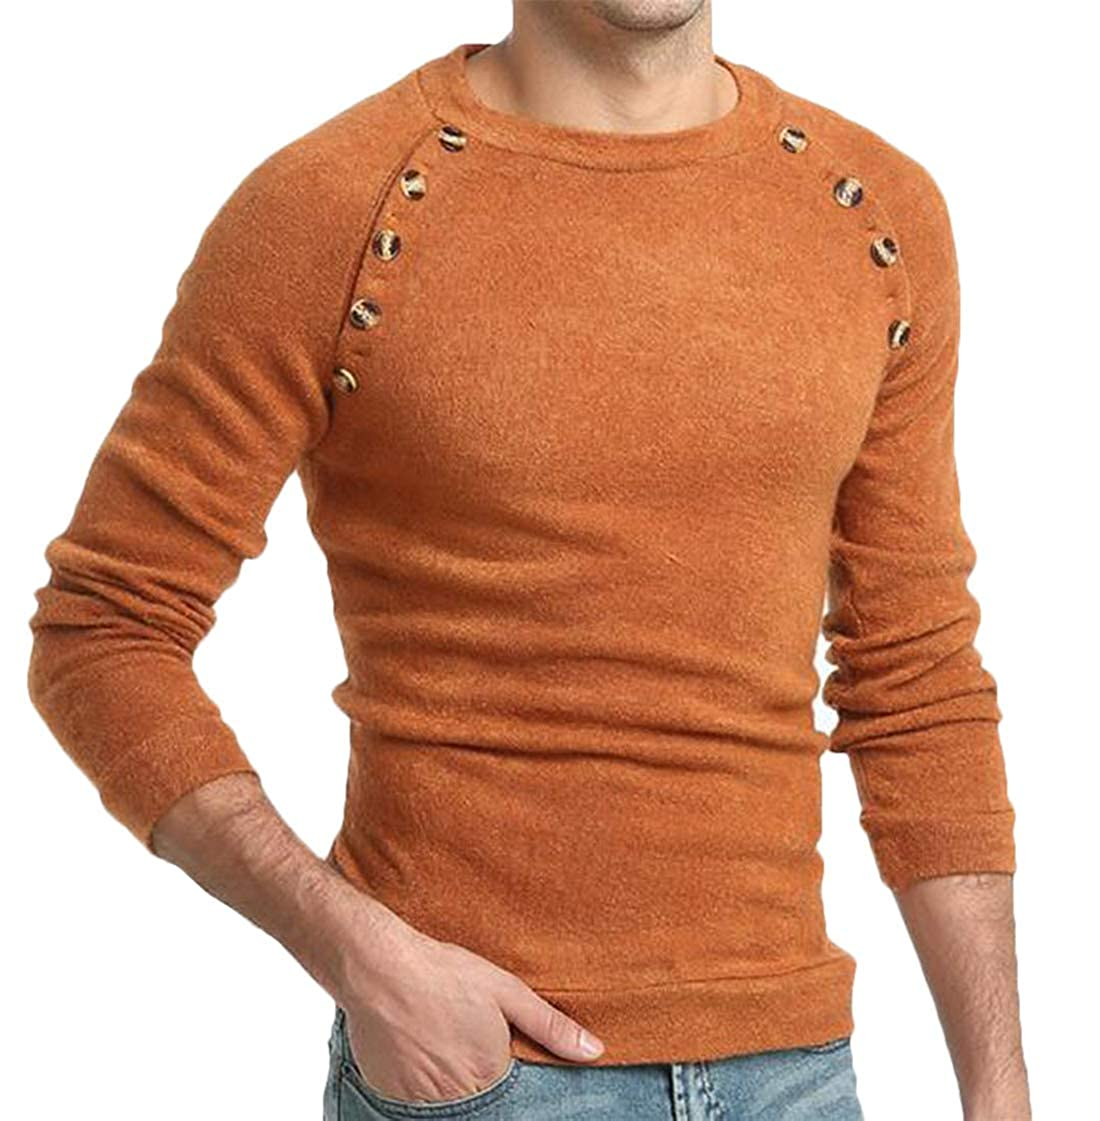 XiaoTianXinMen XTX Mens Casual Solid Long Sleeve Crew Neck Buttons Knit Pullover Sweater